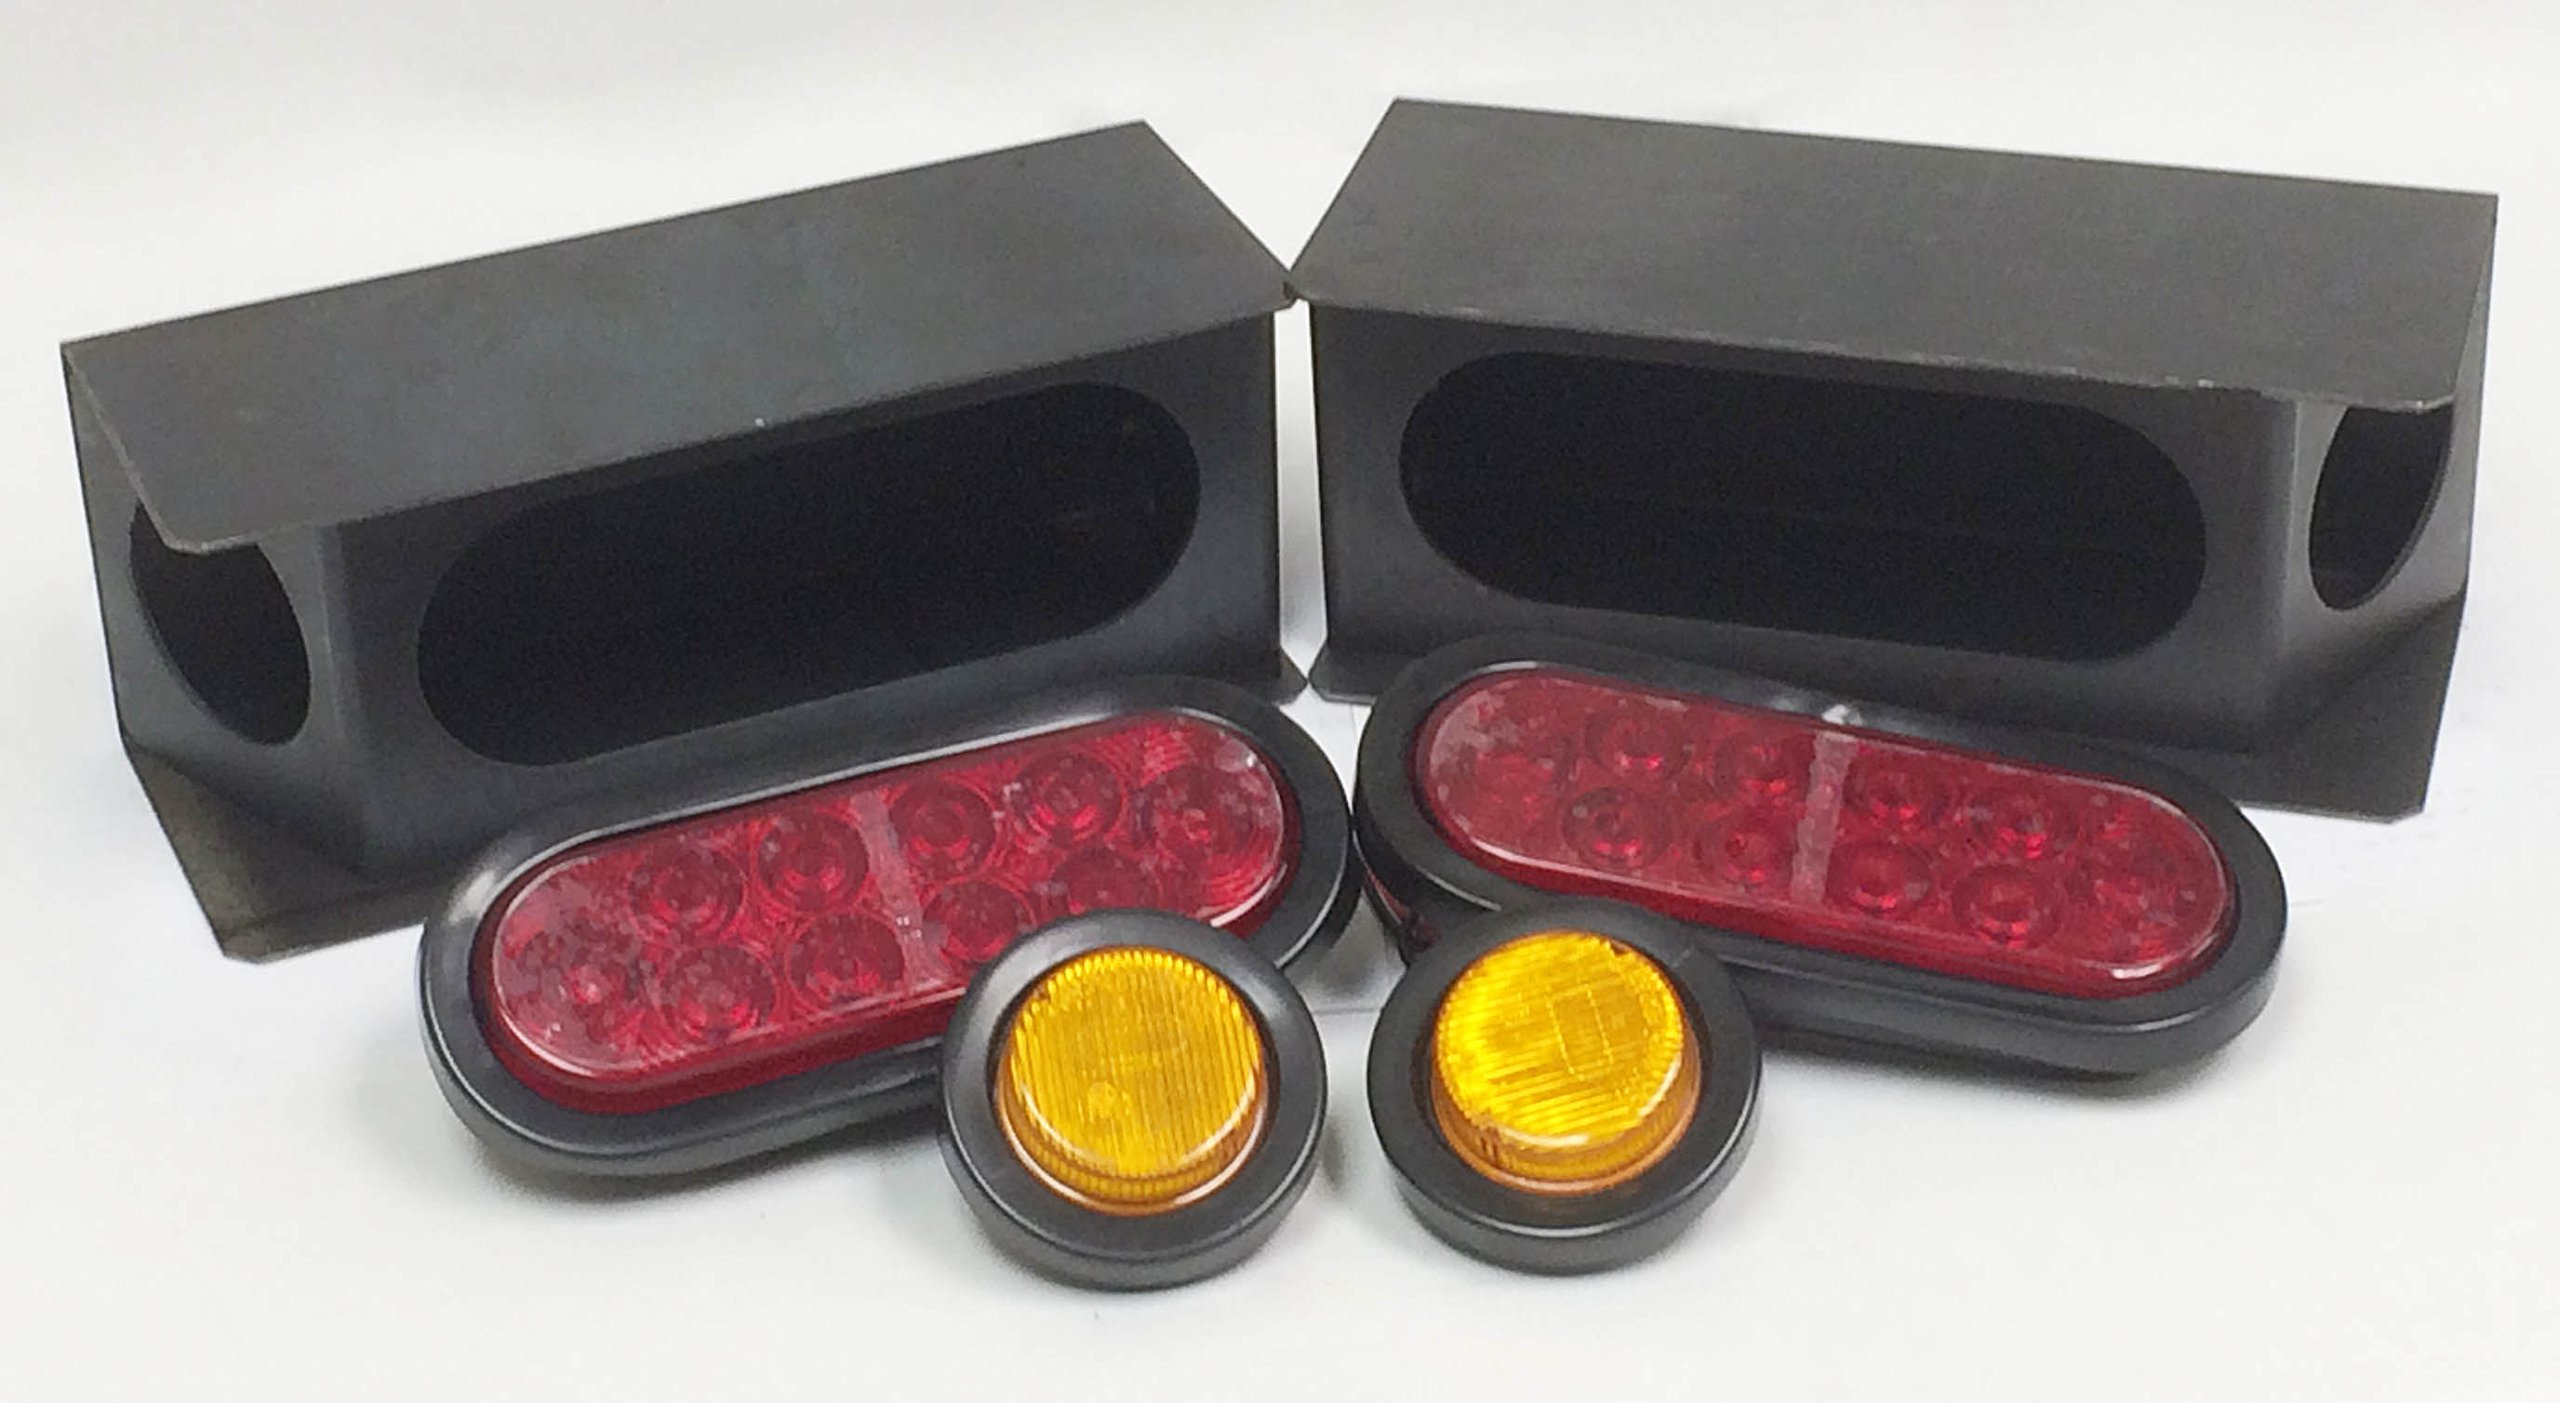 2 Steel Trailer Angled Light Boxes w/ 6'' Red Oval & 2'' Round Amber LED Lights by LIBRA